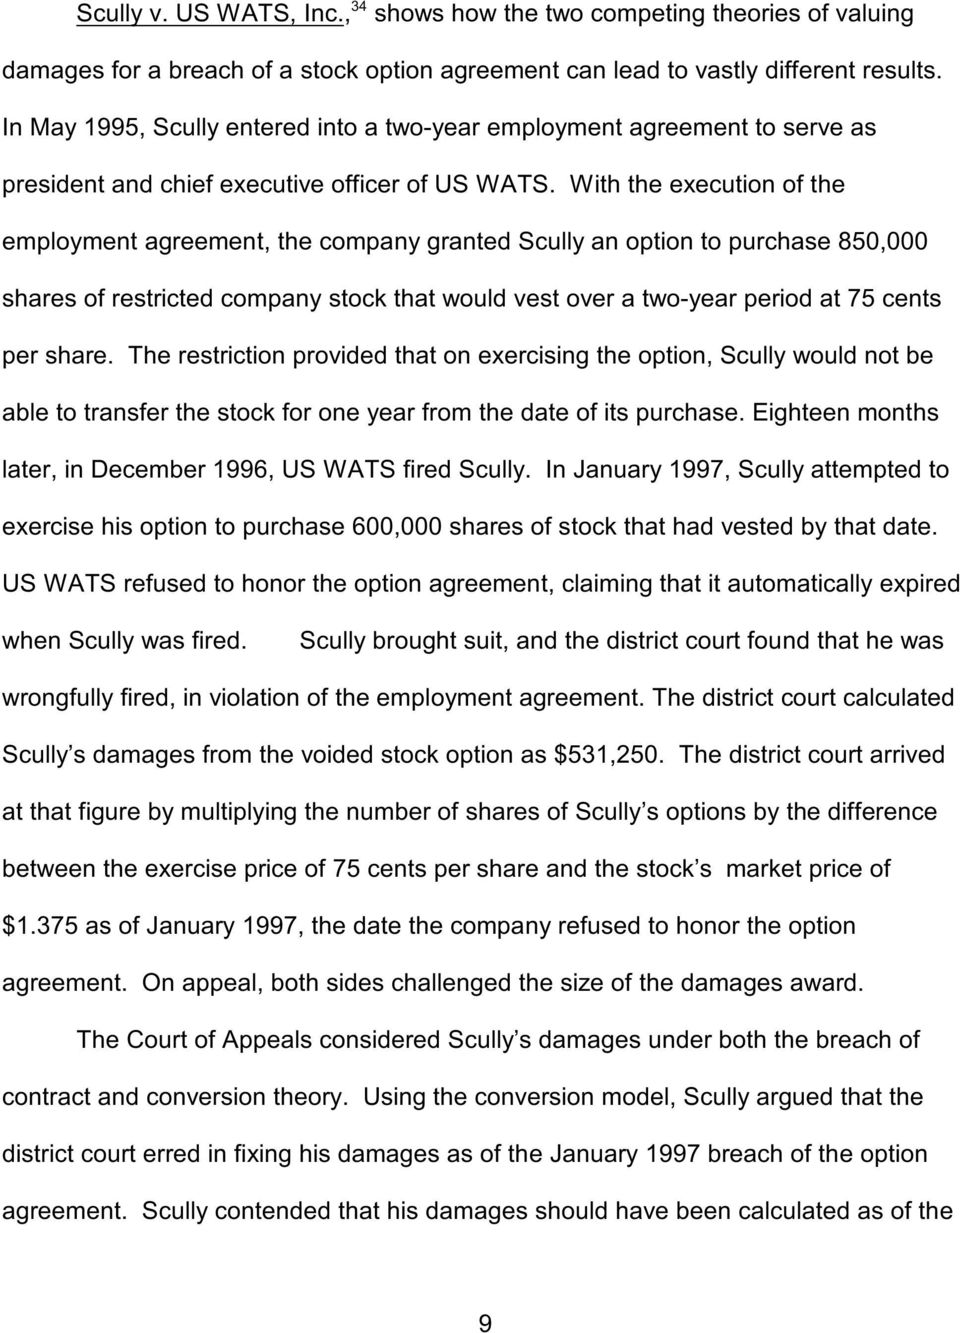 Wi e execution of e employment agreement, e company granted Scully an option to purchase 850,000 shares of restricted company stock at would vest over a two-year period at 75 cents per share.